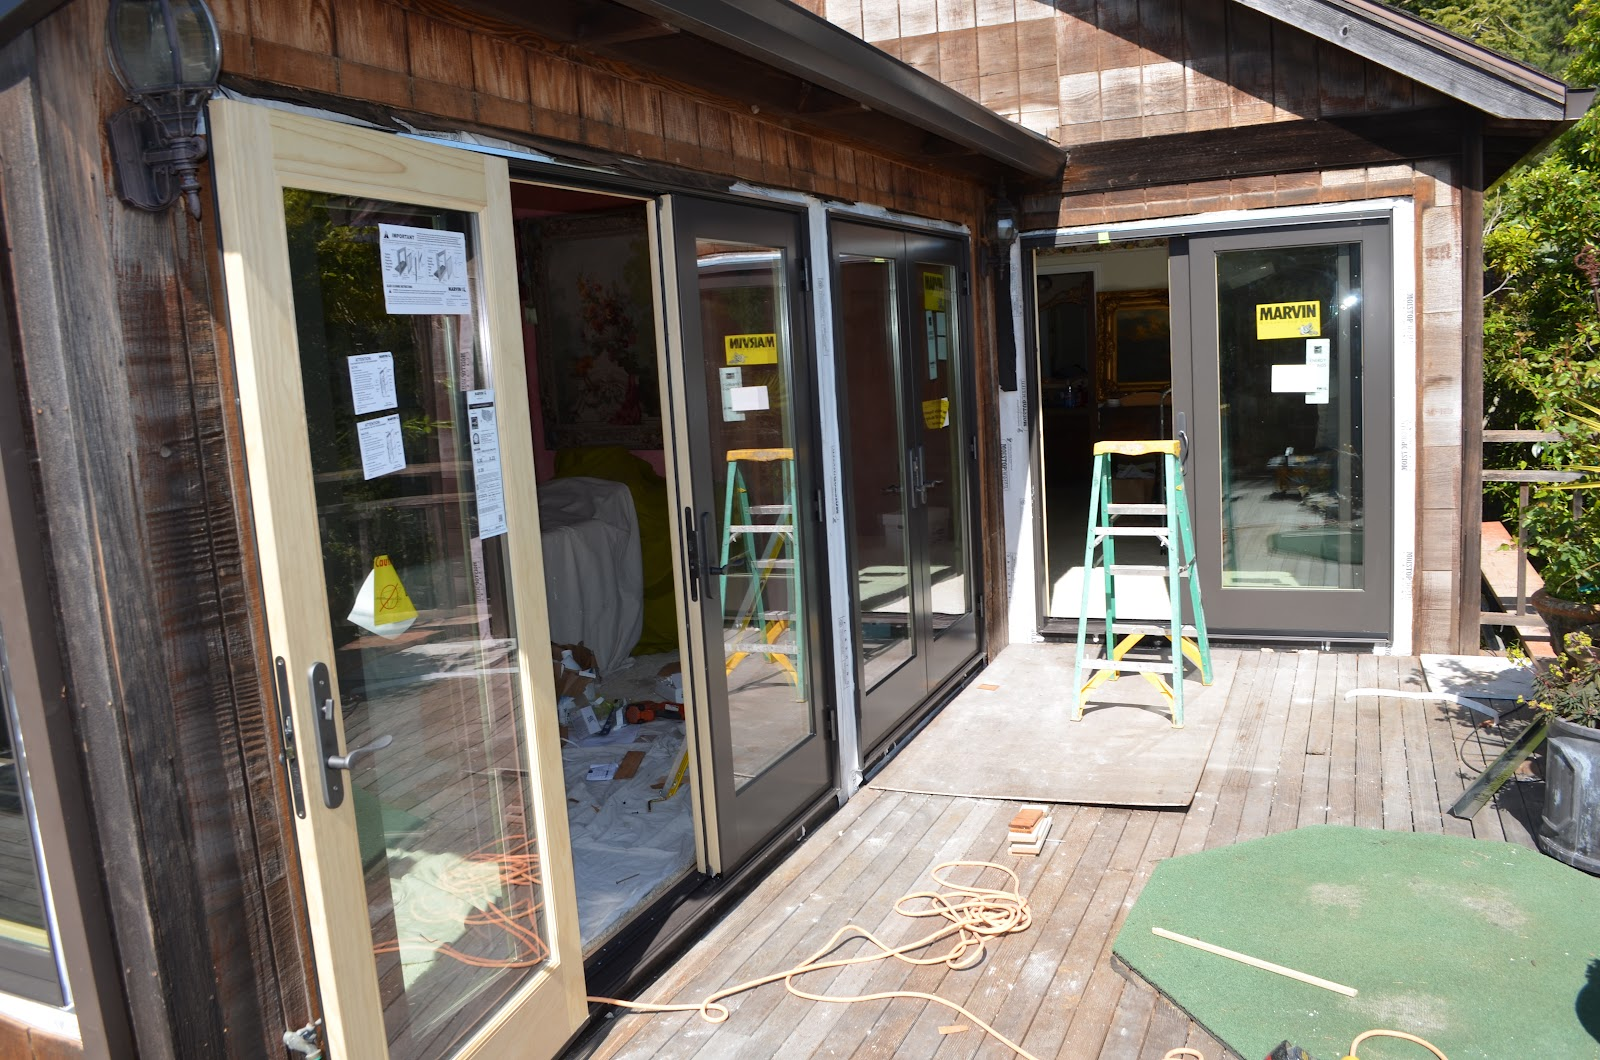 Marvin clad ultimate sliding french door